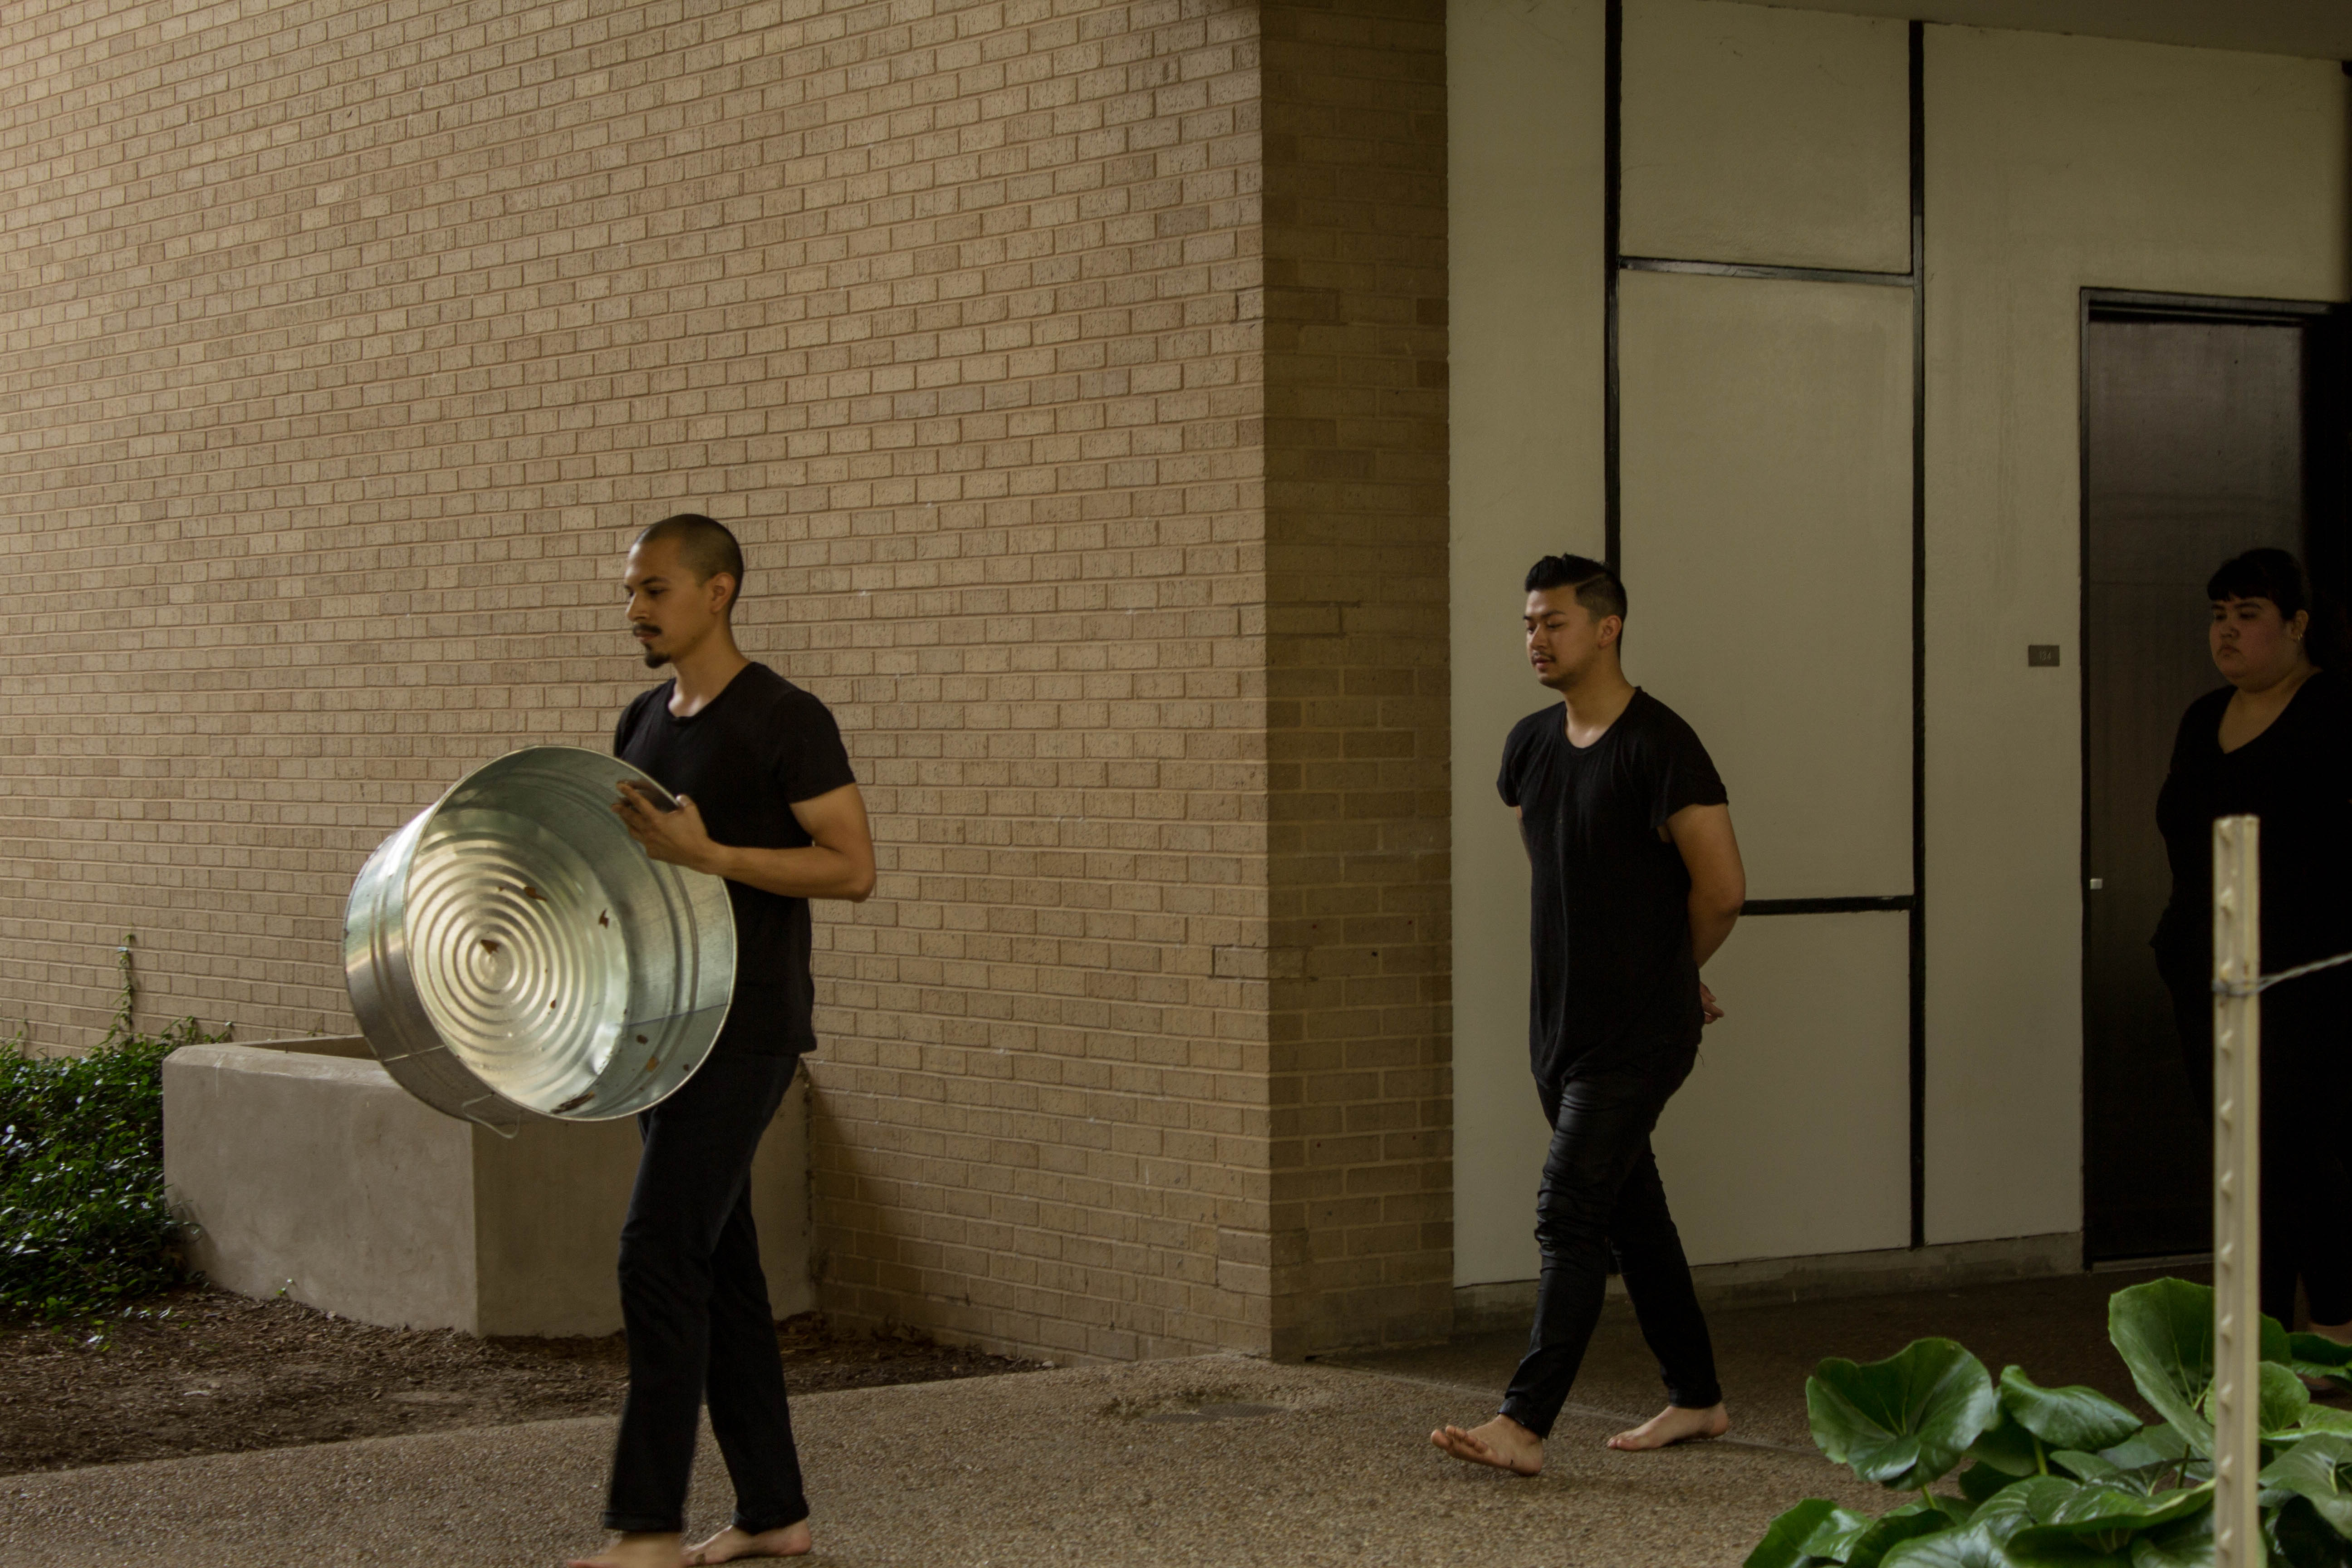 Image: Artist with bucket drumming and leading other artists